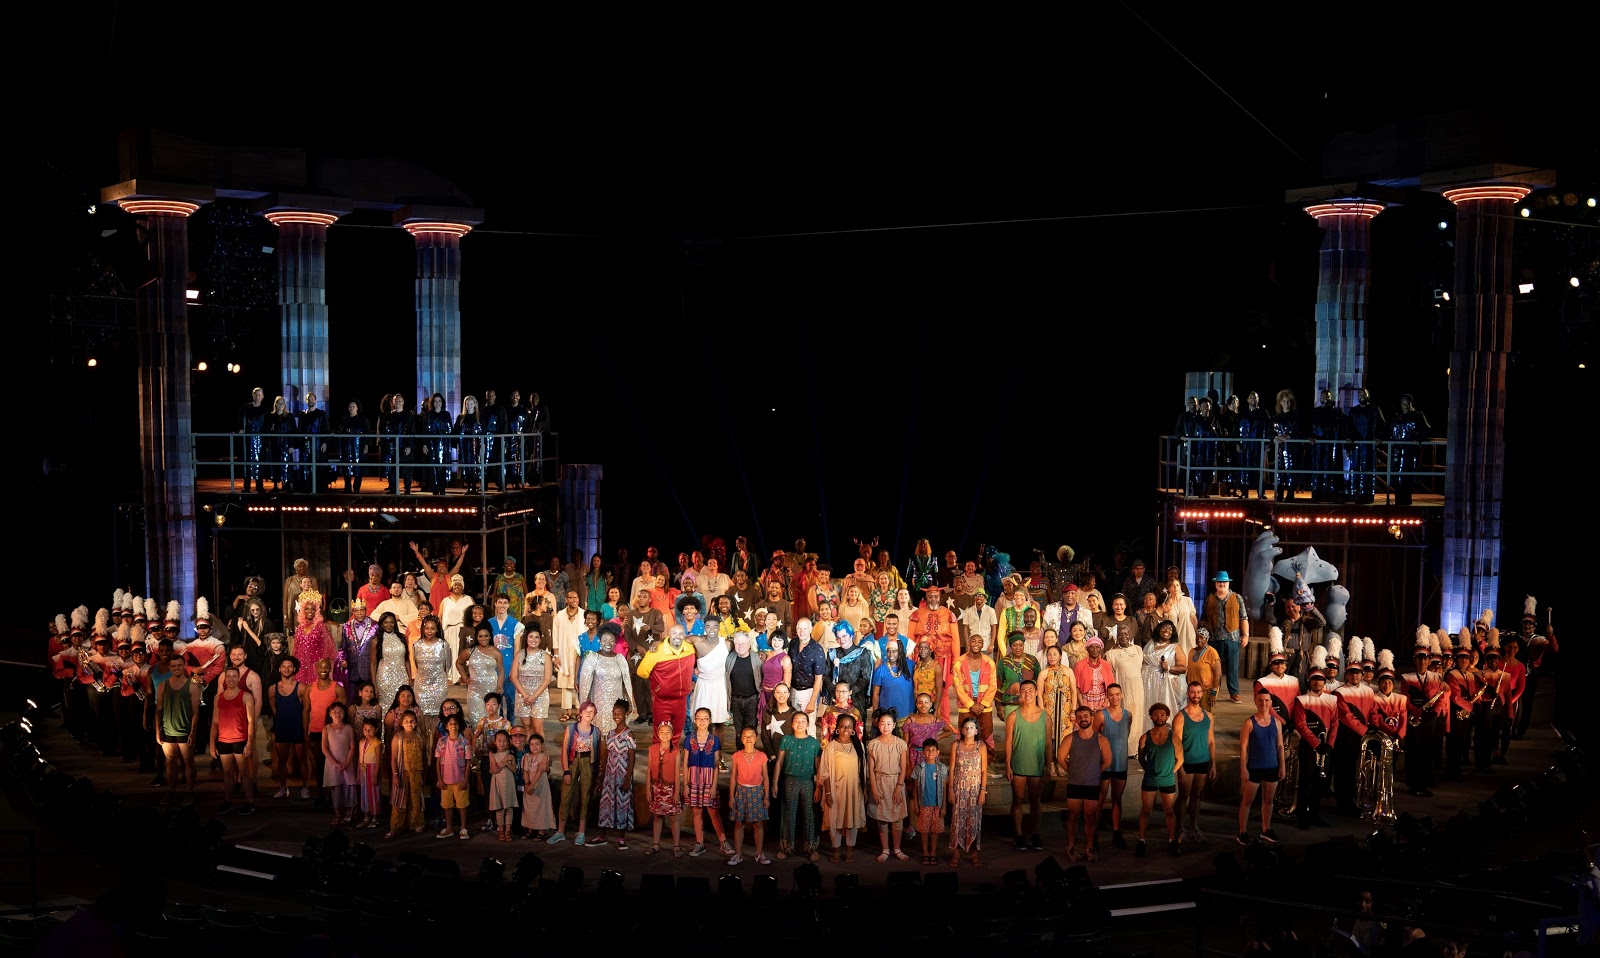 The company of The Public Theater's free Public Works musical adaptation of Hercules, with music by Alan Menken, lyrics by David Zippel, book by Kristoffer Diaz, choreography by Chase Brock, and directed by Lear deBessonet, running at the Delacorte Theater. Photo credit: Joan Marcus.